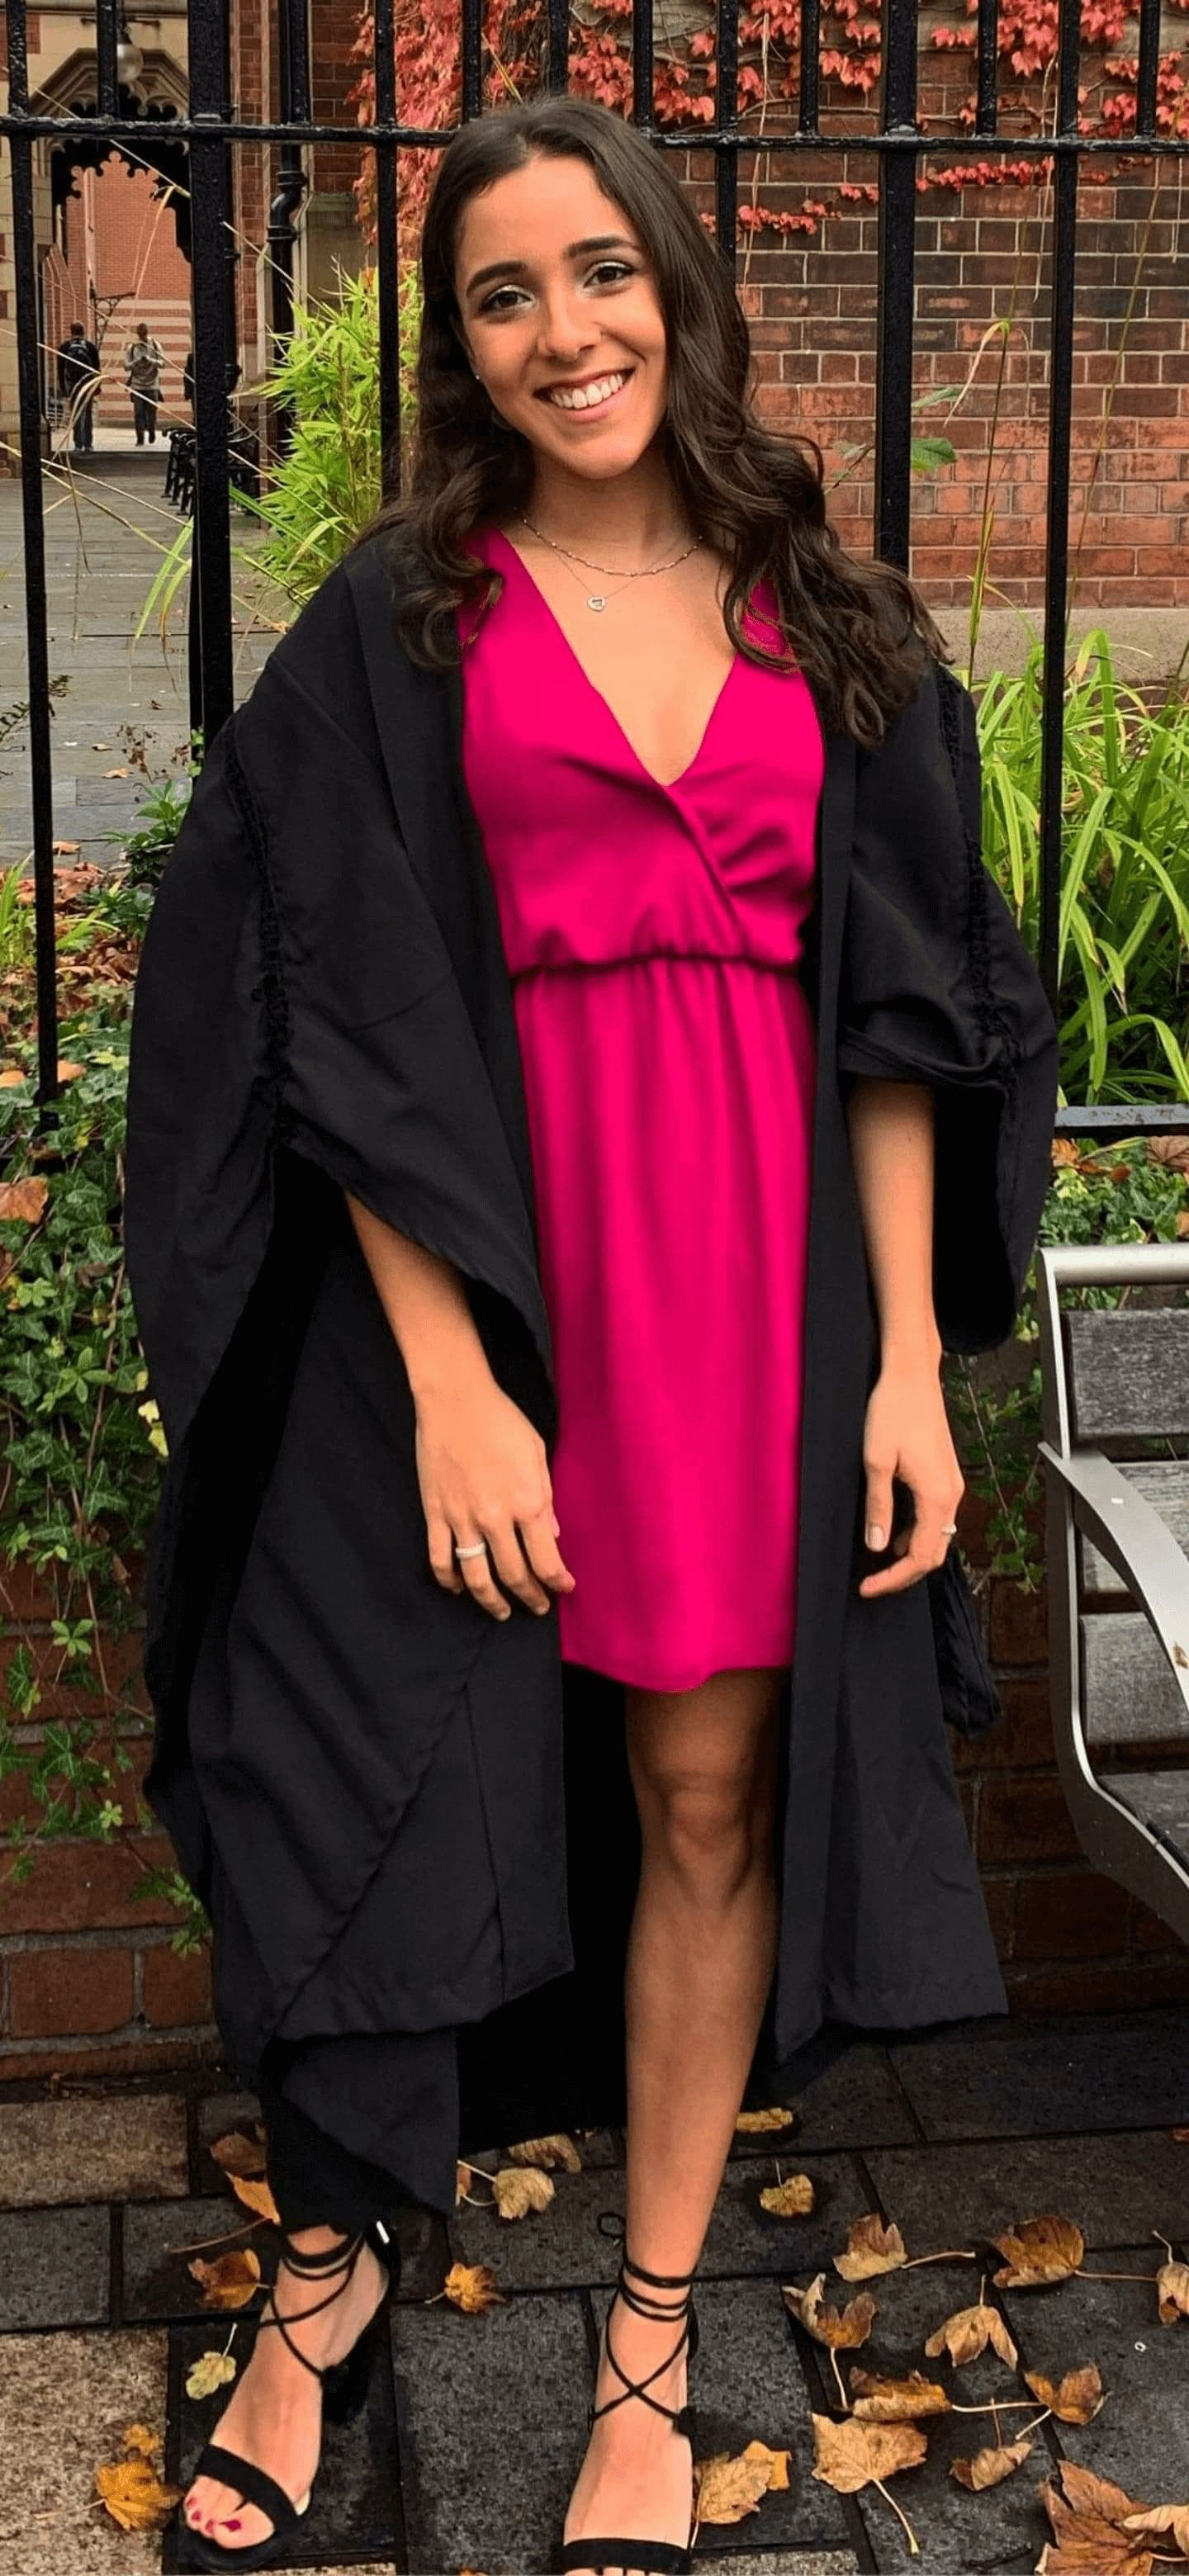 Image may contain: Graduation, Plant, Coat, Overcoat, Woman, Female, Fashion, Dress, Human, Person, Apparel, Clothing